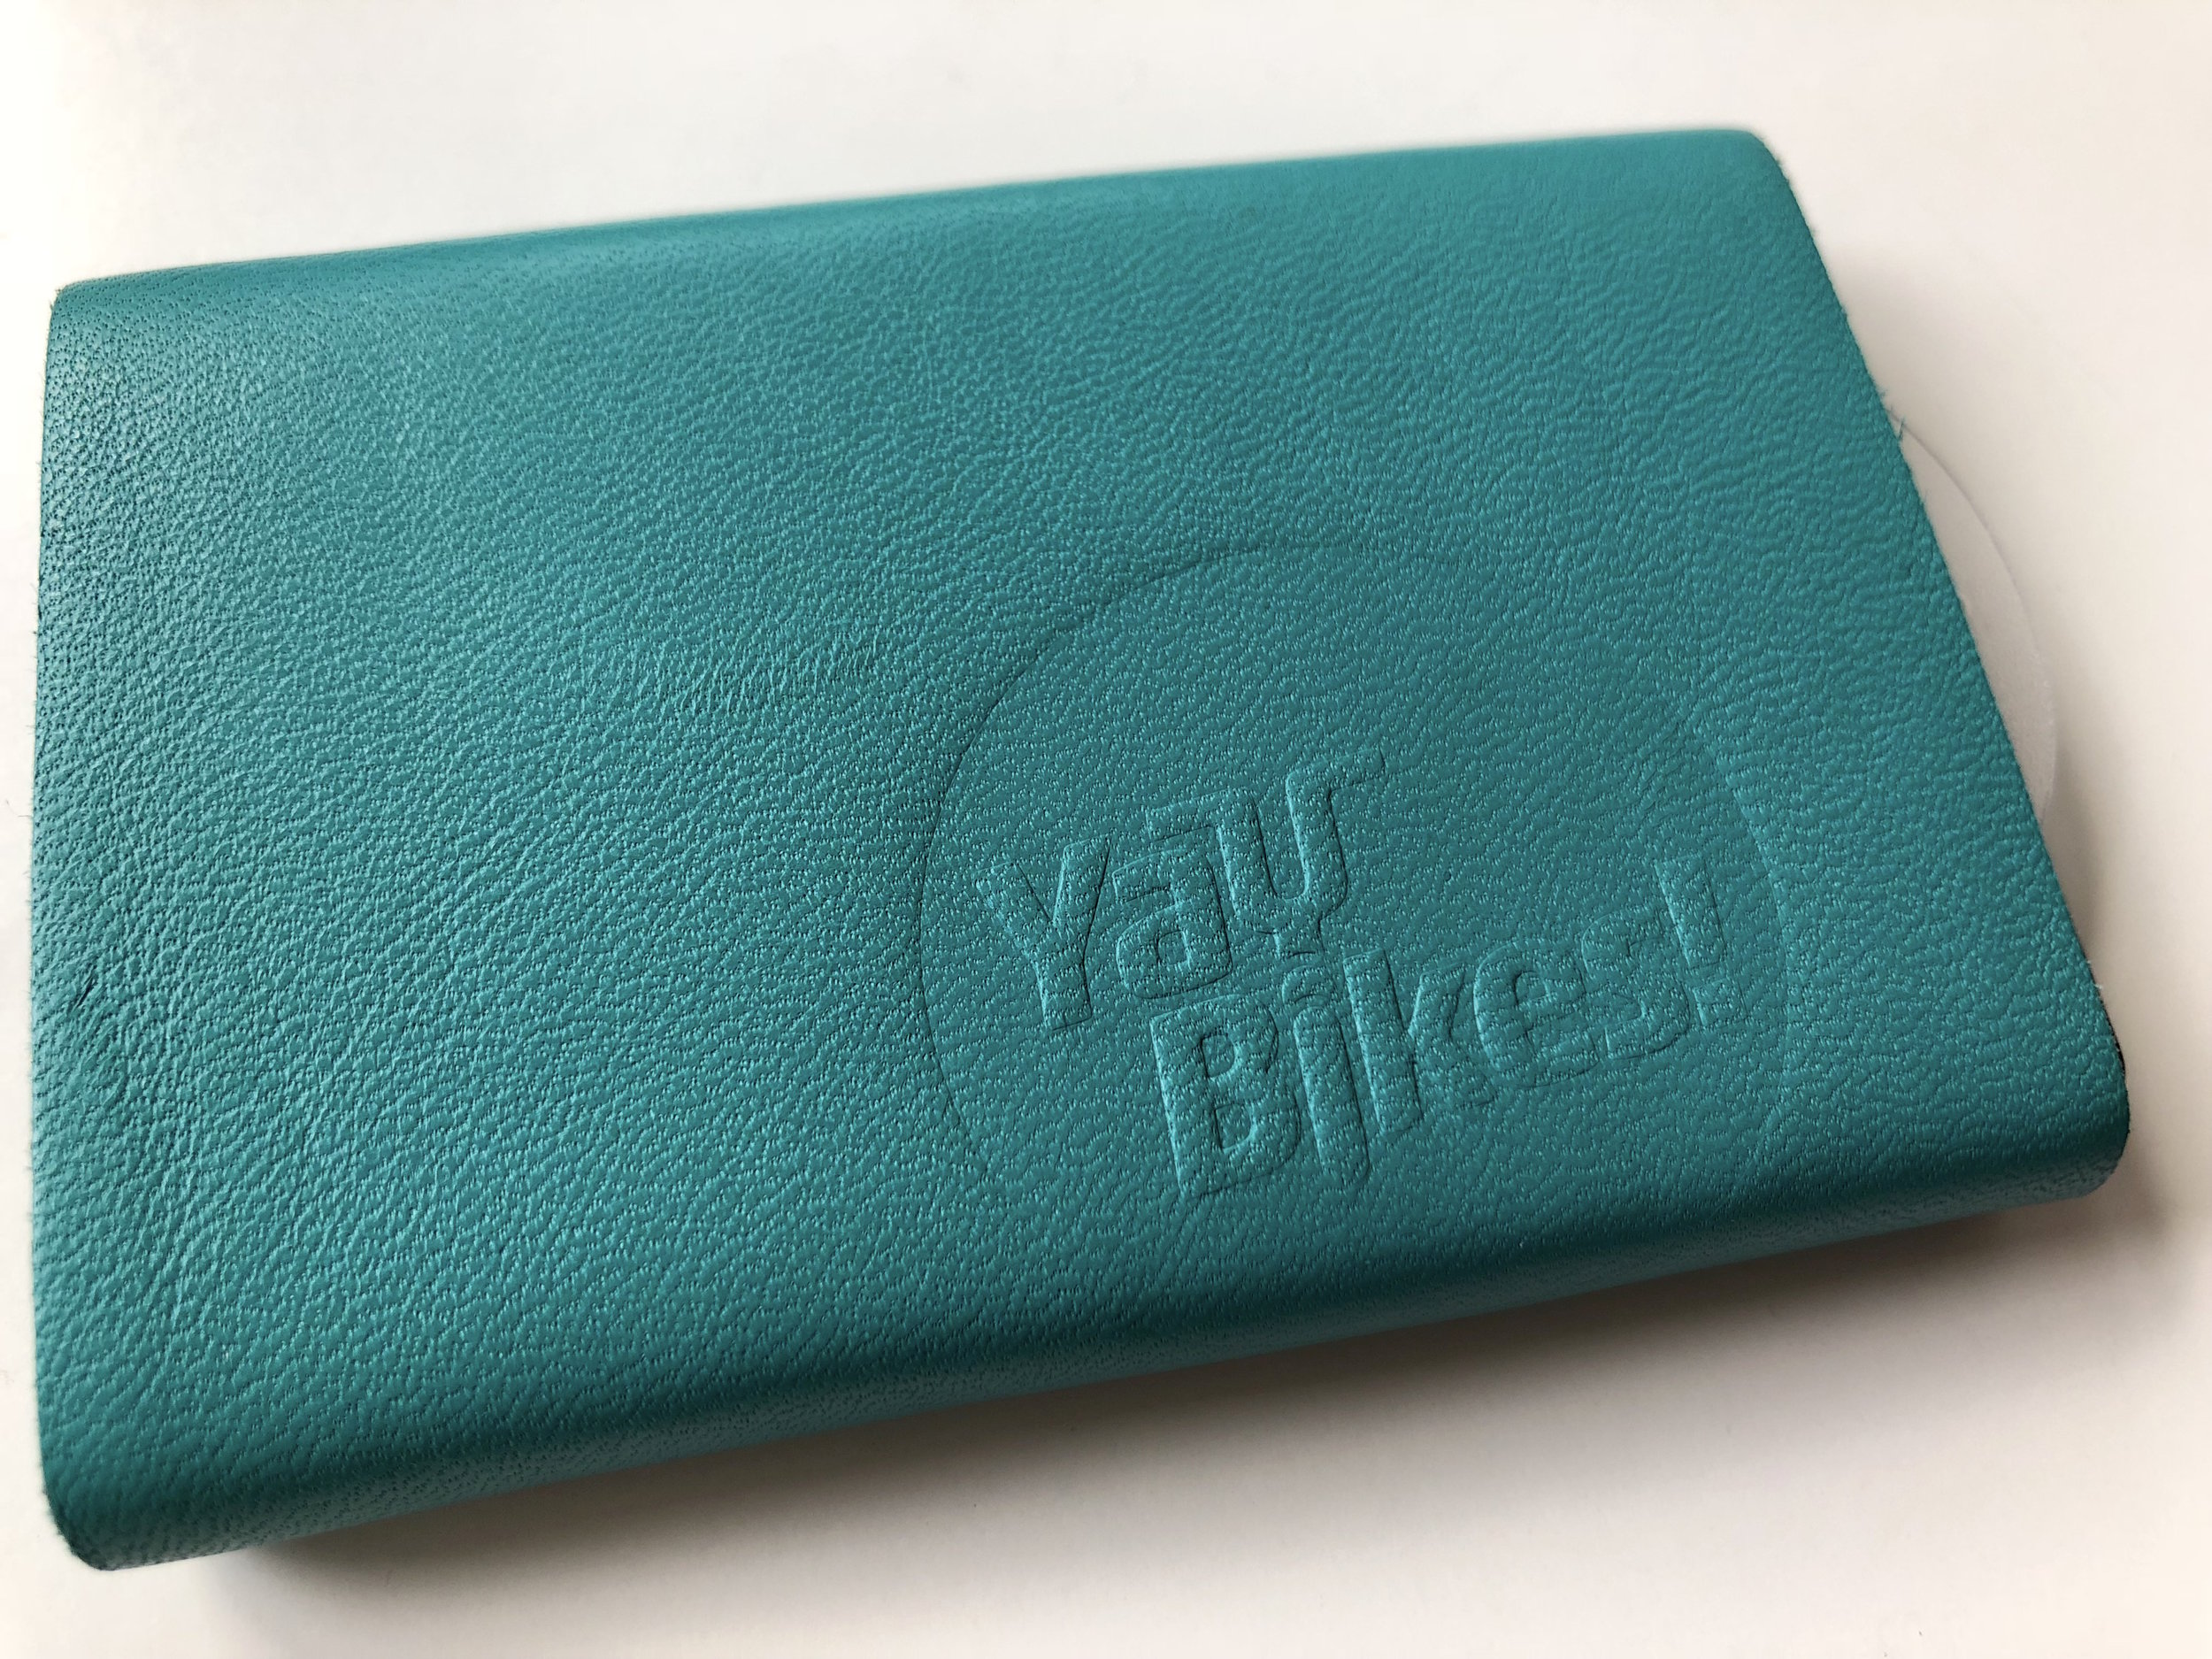 Buy a wallet with the Yay Bikes! logo—leather color and style of your choice—and Paul will donate $10 to Yay Bikes!